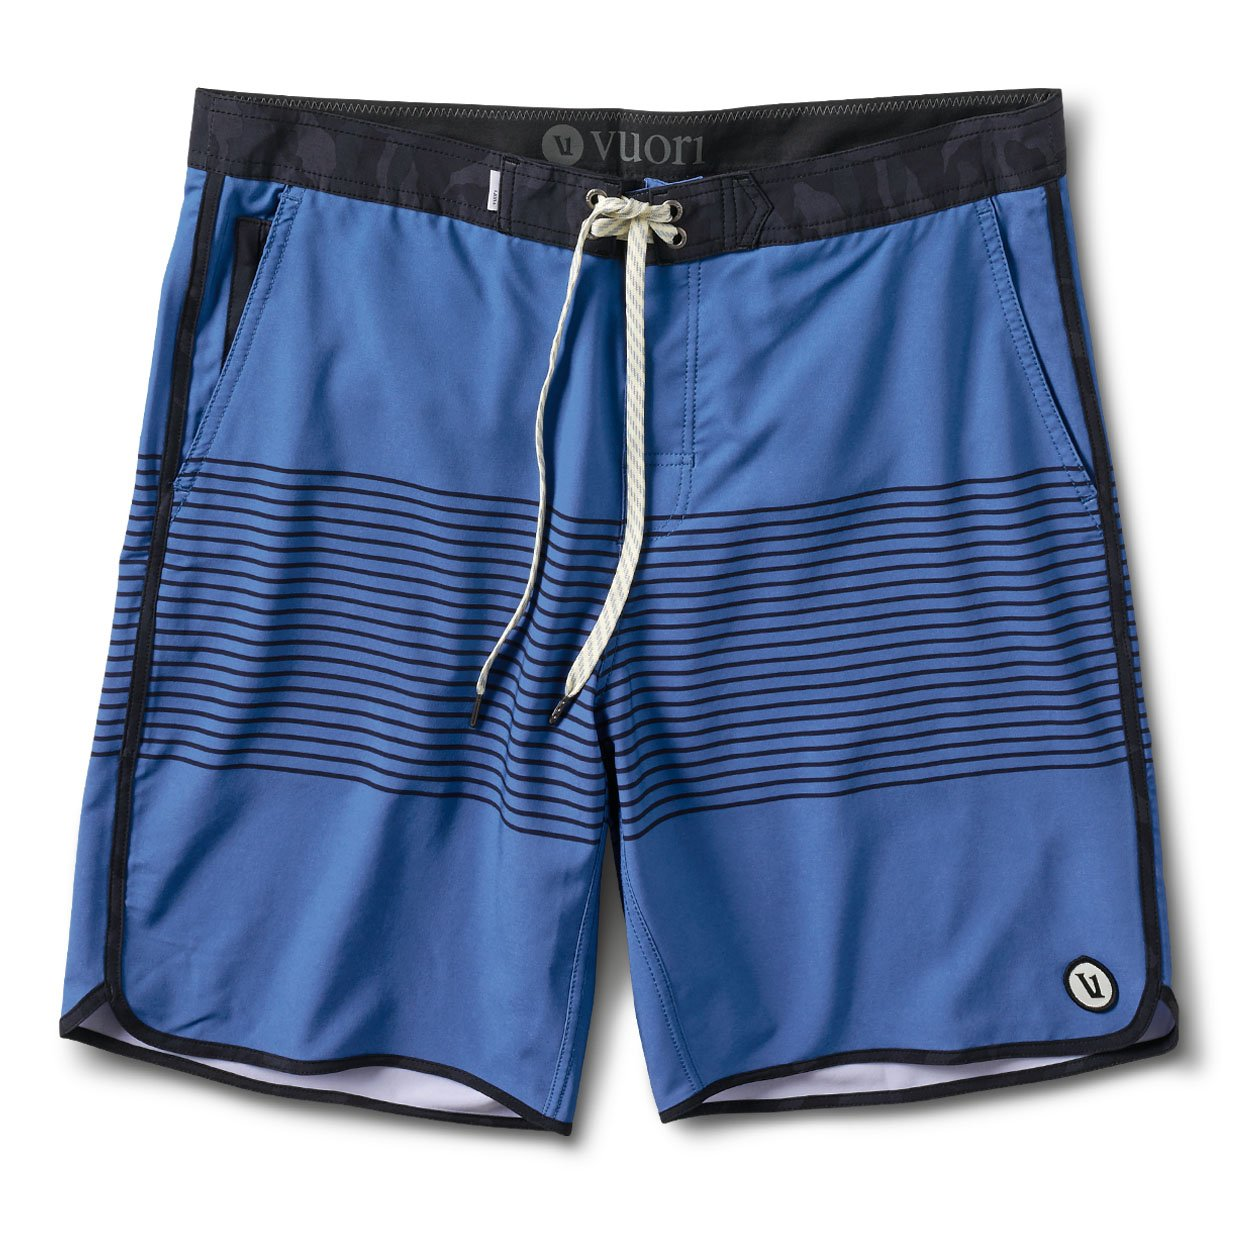 Cruise Boardshort - Sea Charcoal Stripe - Sea Charcoal Stripe 1